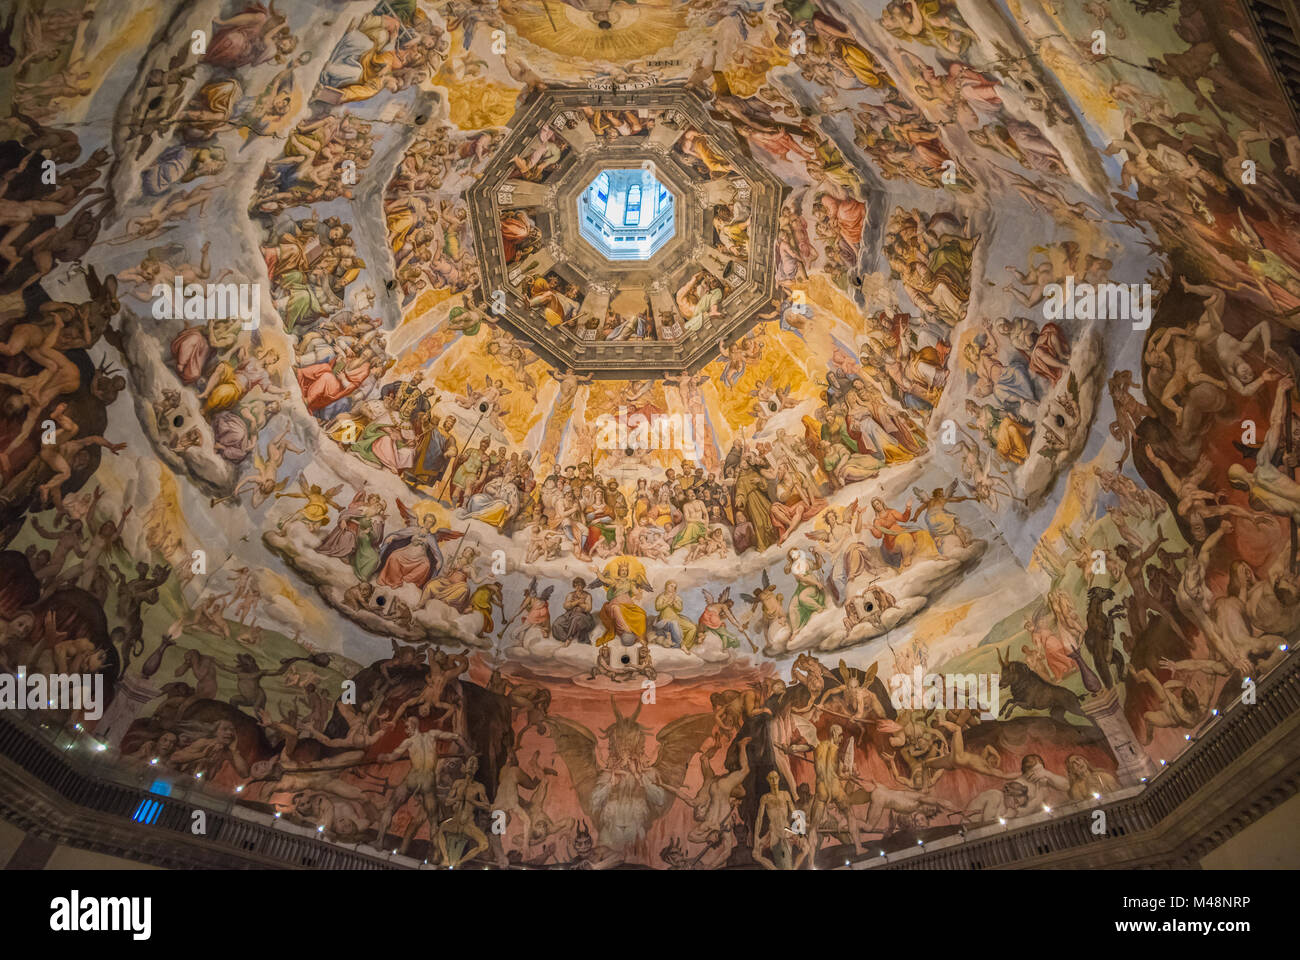 The Cupola of Duomo of Florence, Tuscany, Italy - Stock Image